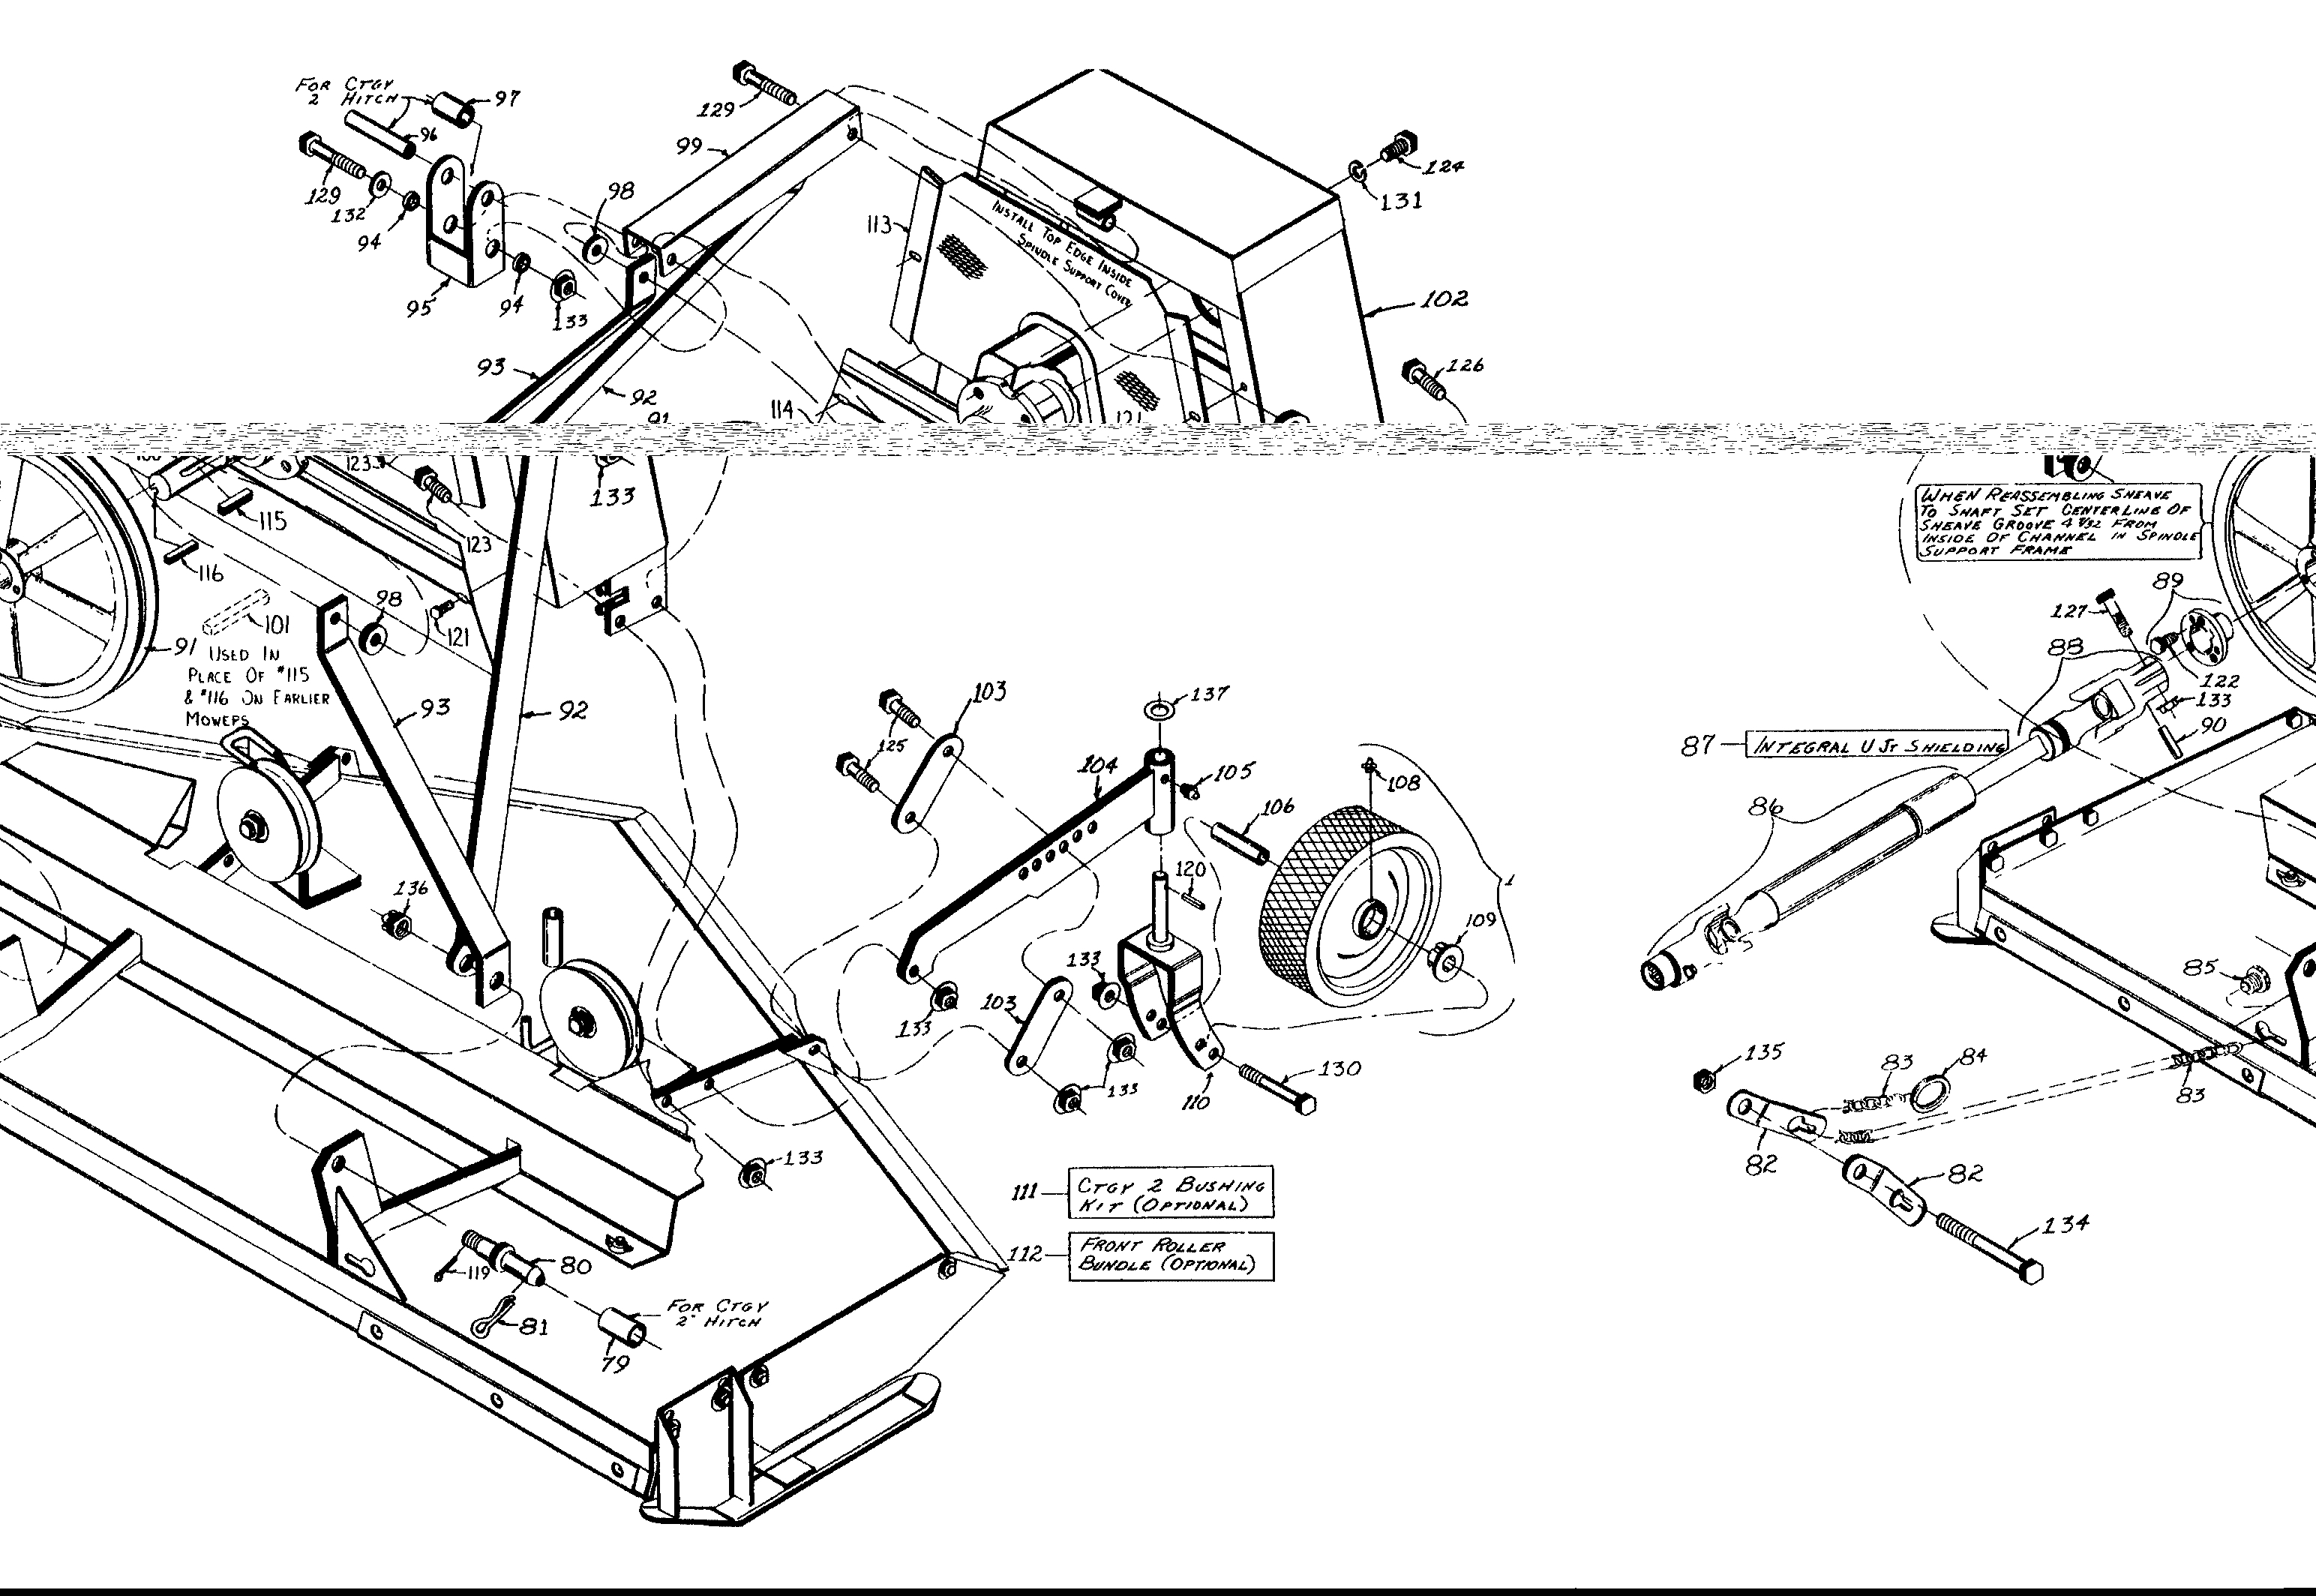 Woods Mower Parts Diagrams Woods Parts 1001 Best Wood Inspiration Ideas Images Building